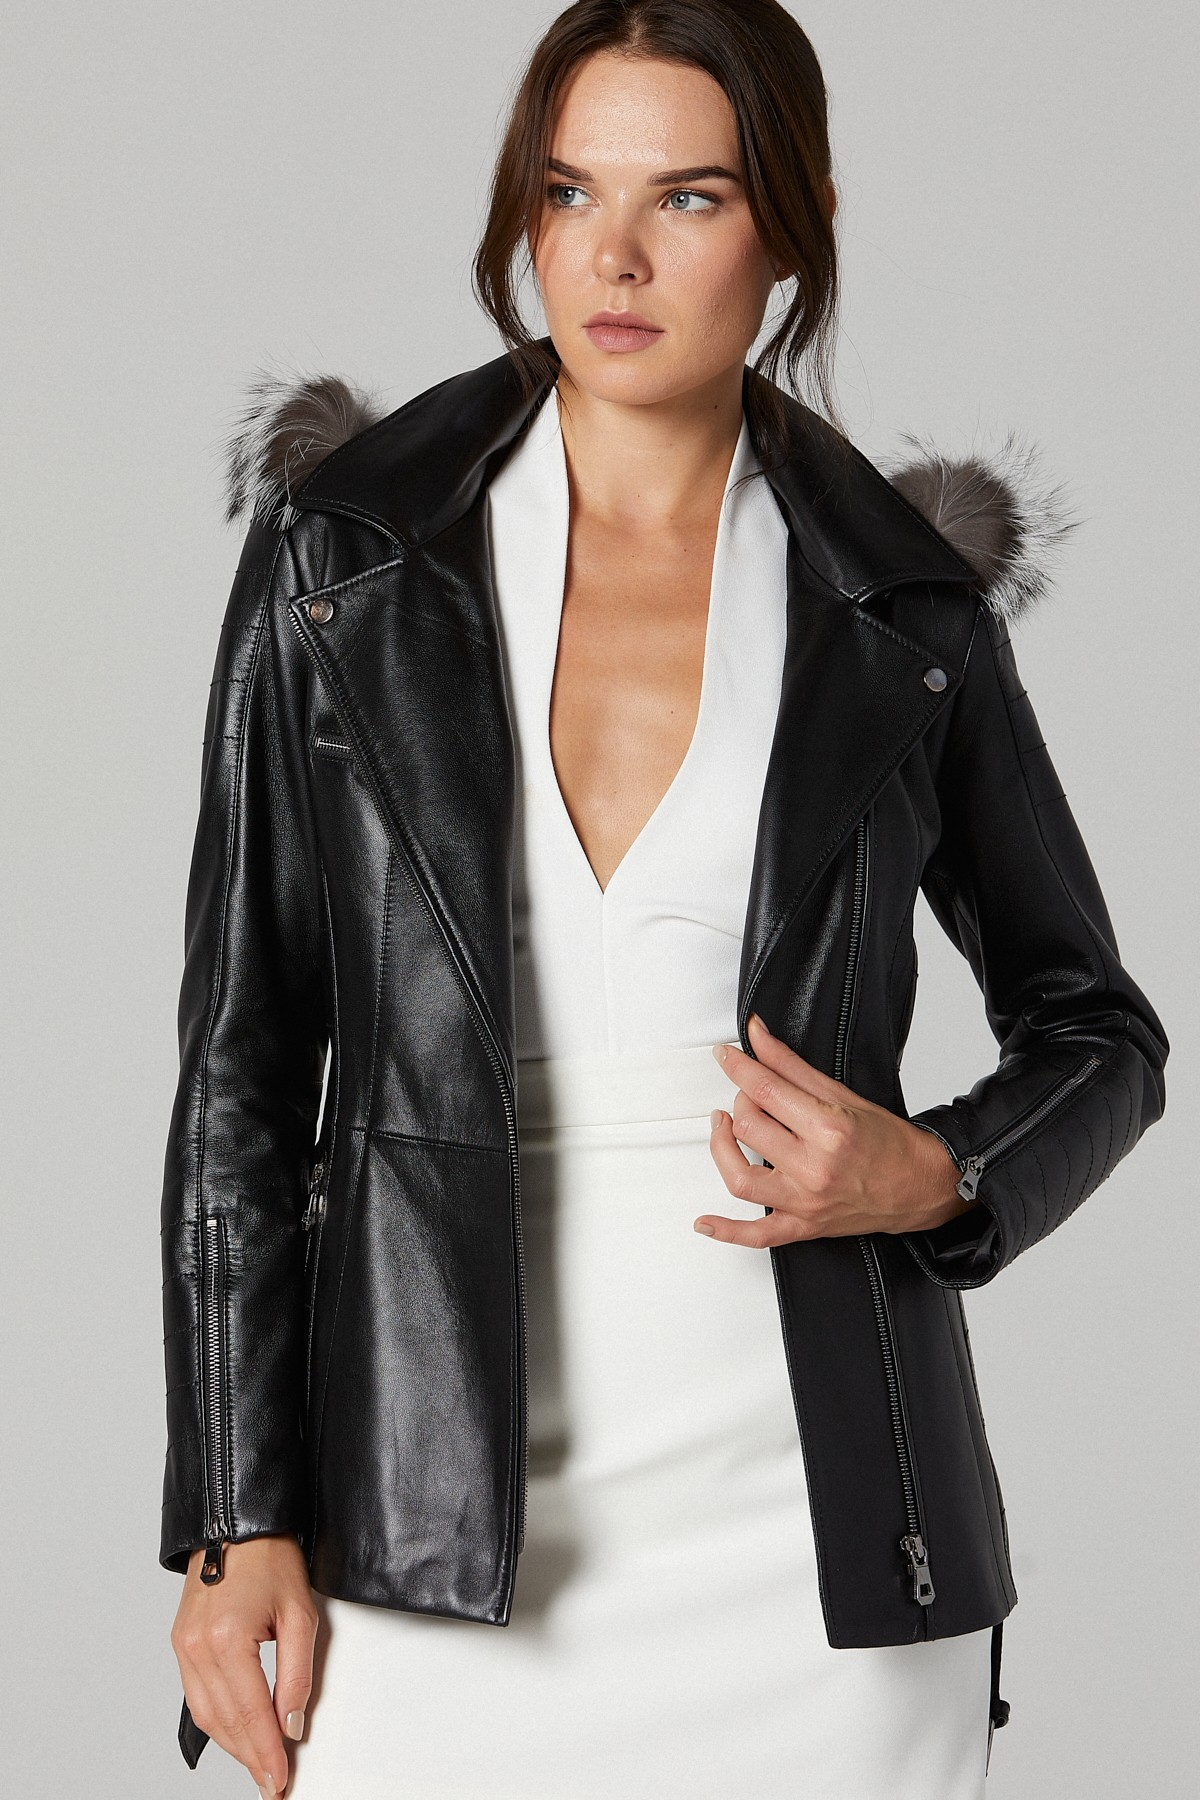 Leather Bomber Jacket With Fur Collar Womens